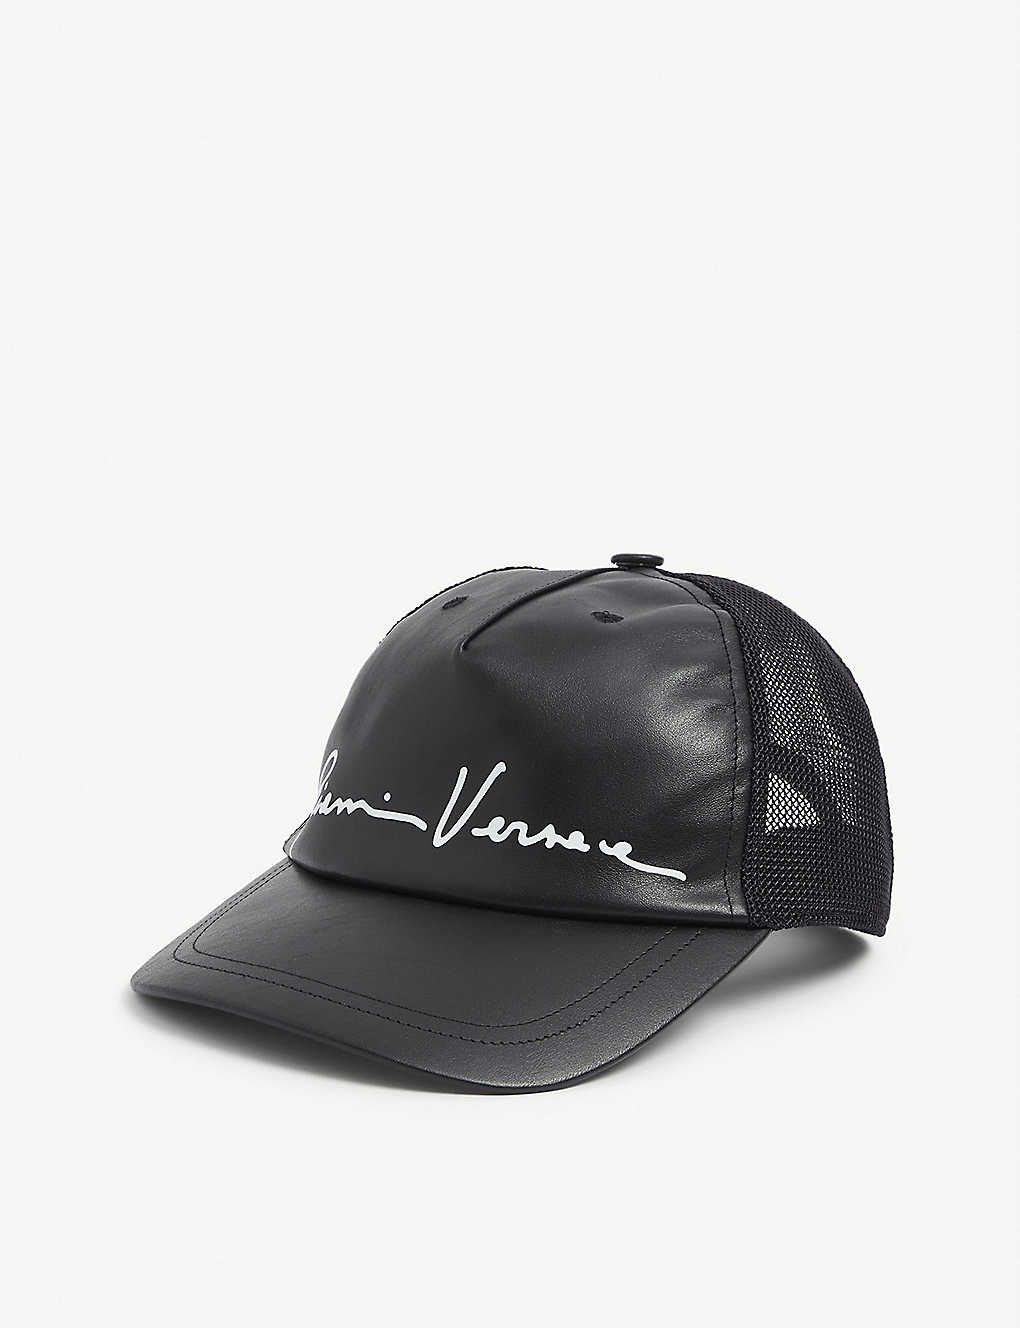 VERSACE: Venice leather baseball cap